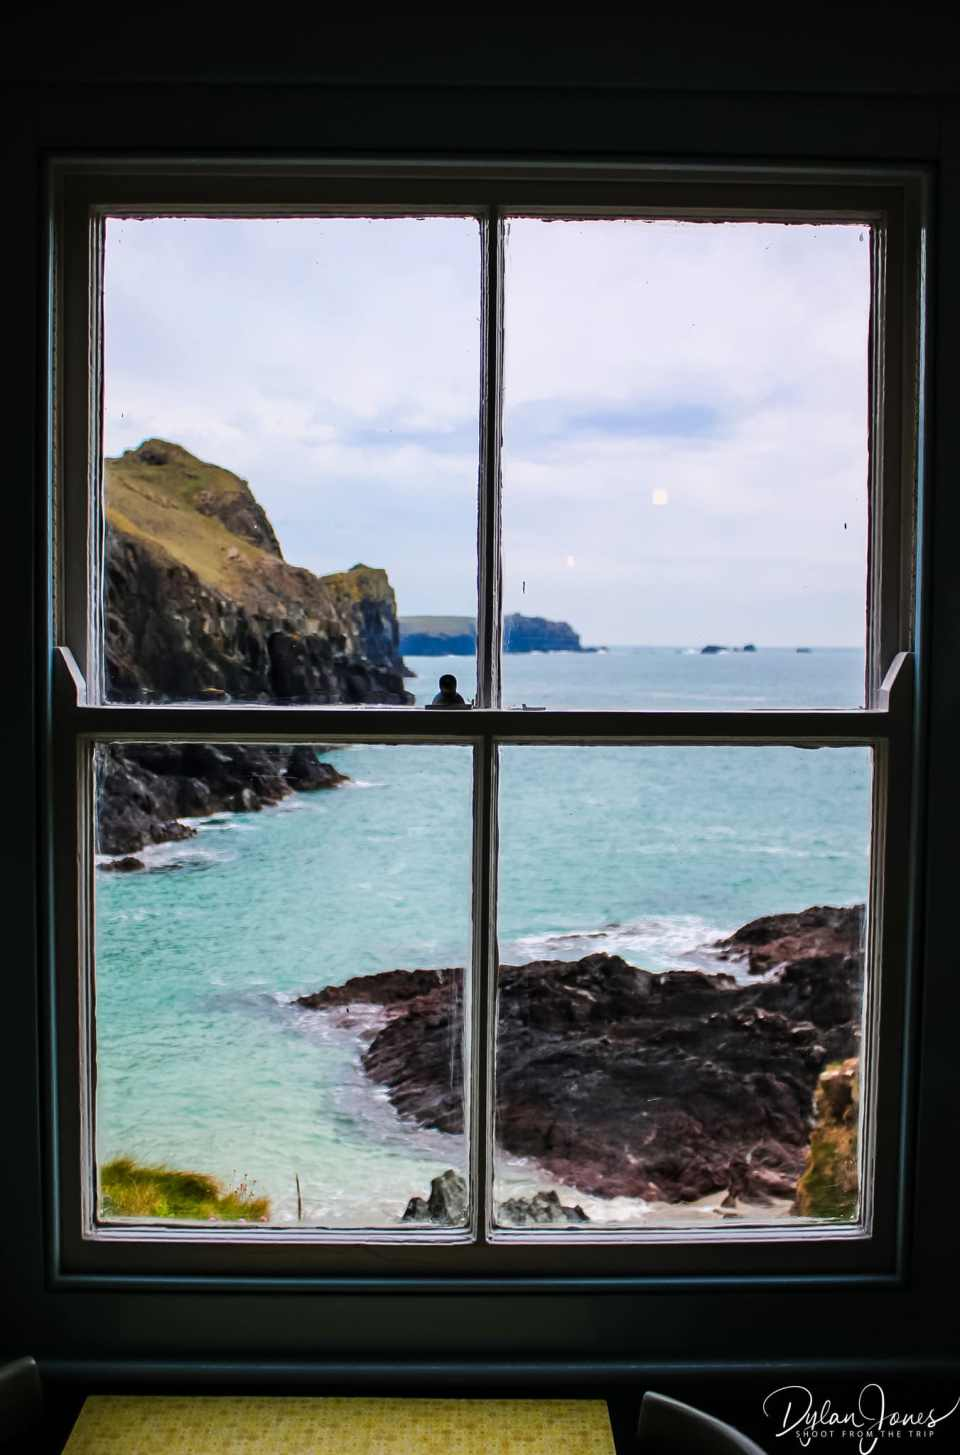 View from the window of Kynance Cove Cafe, South Cornwall coast